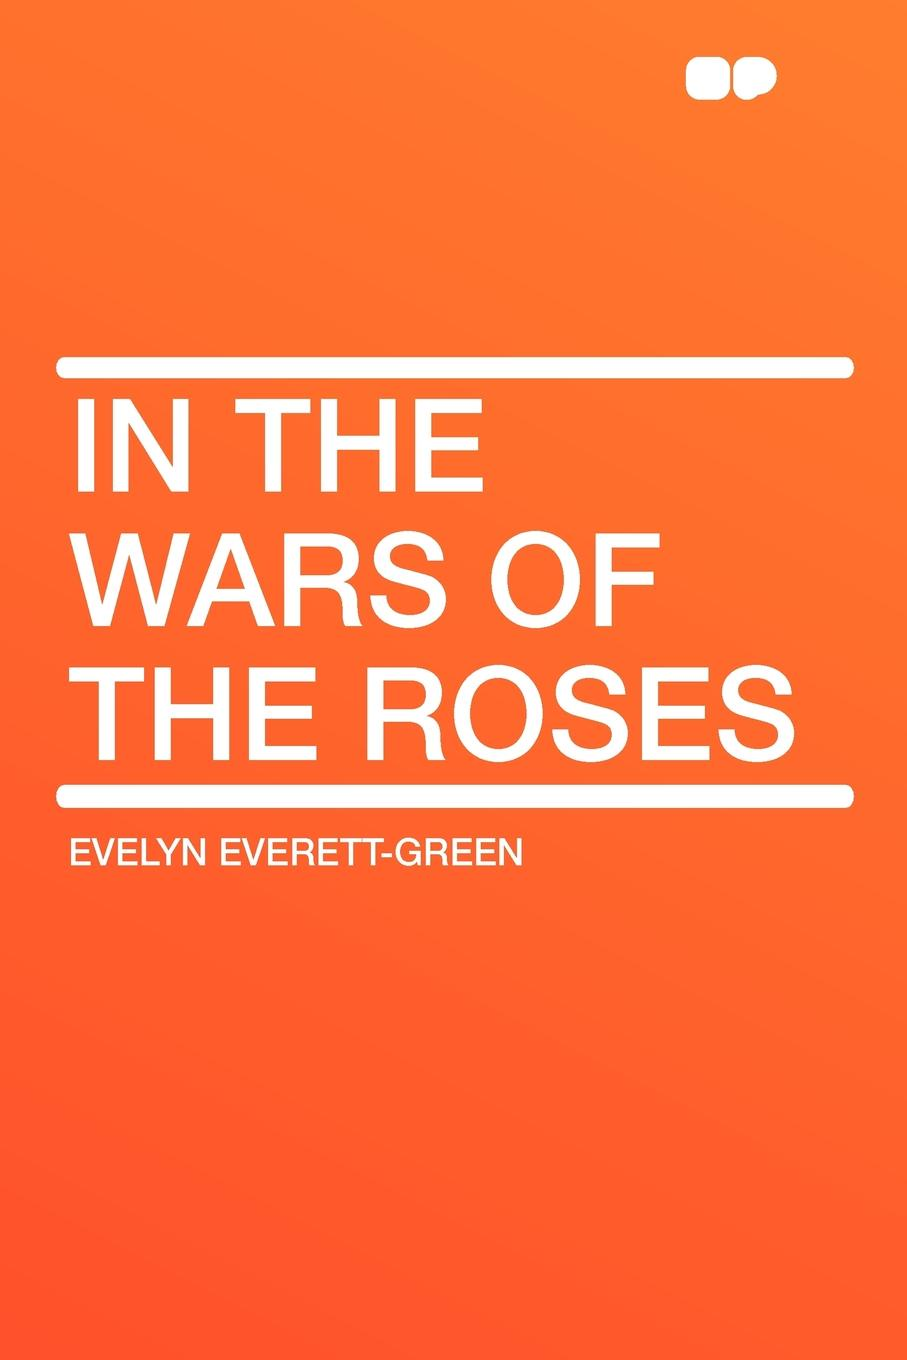 лучшая цена Evelyn Everett-Green In the Wars of the Roses